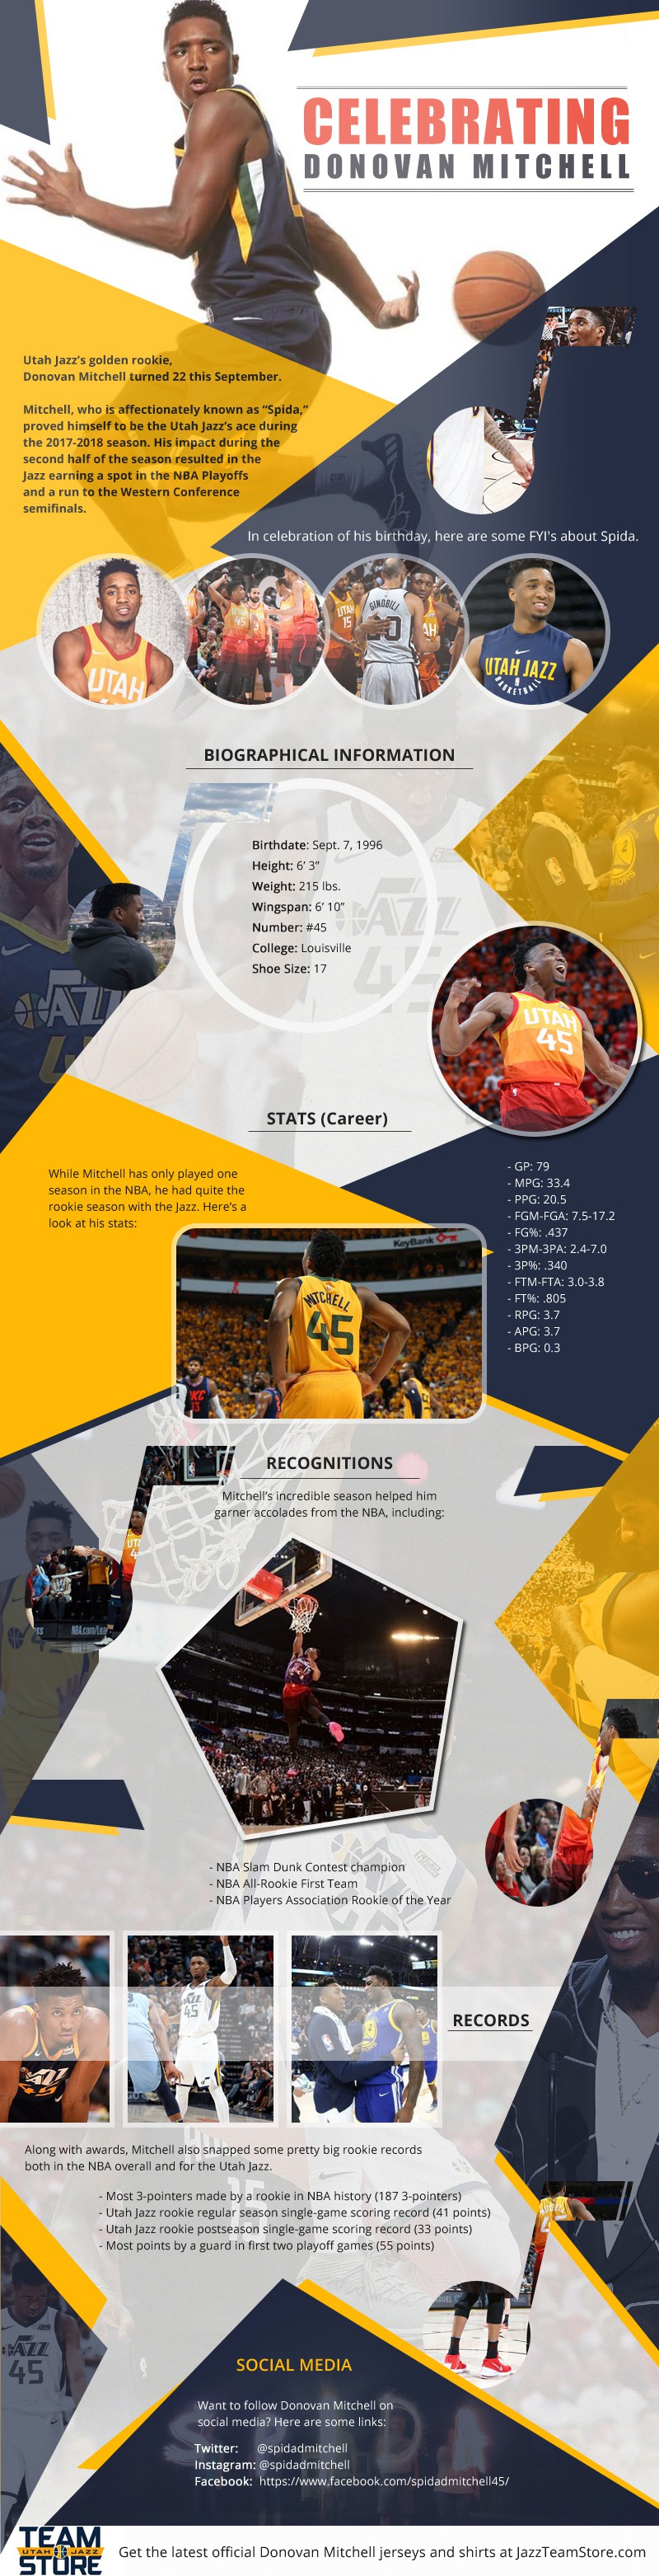 Celebrating Donovan Mitchell [infographic]